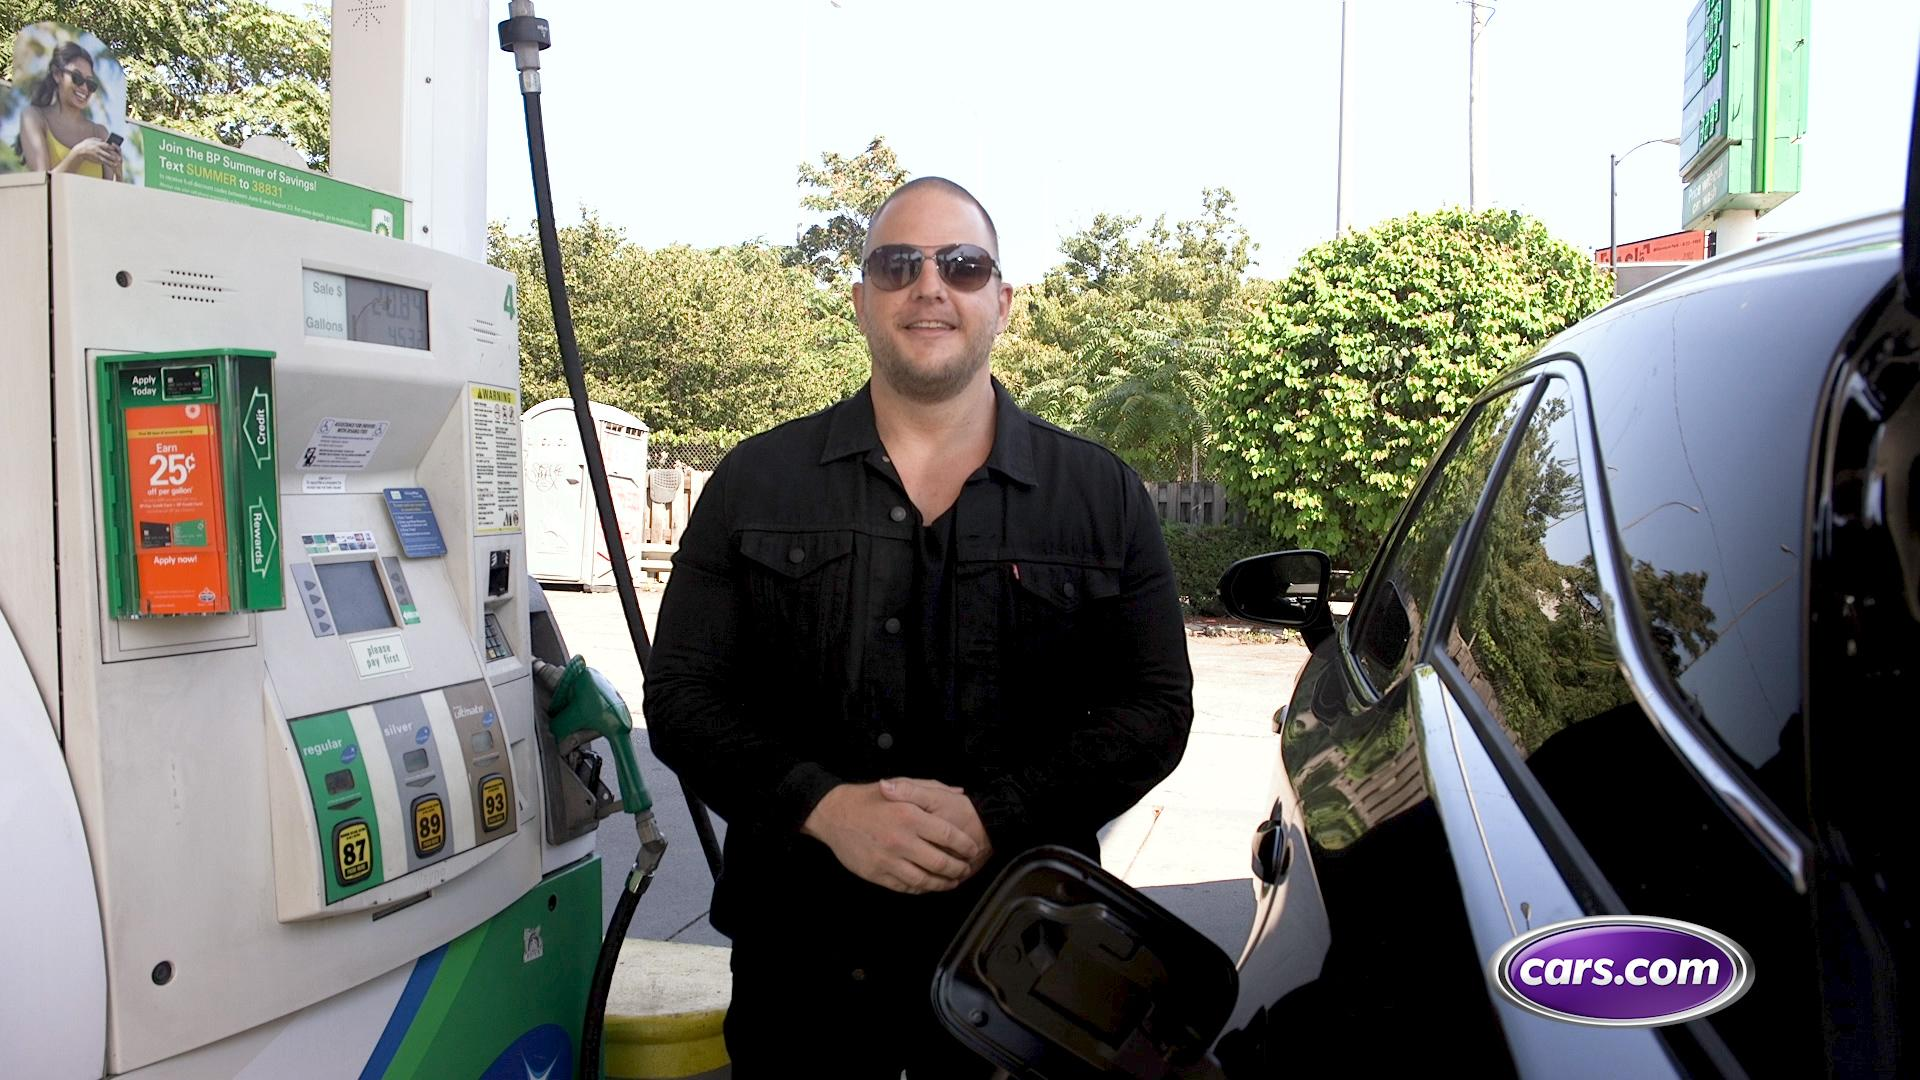 Do You Have Bad Gas? Your Car Might